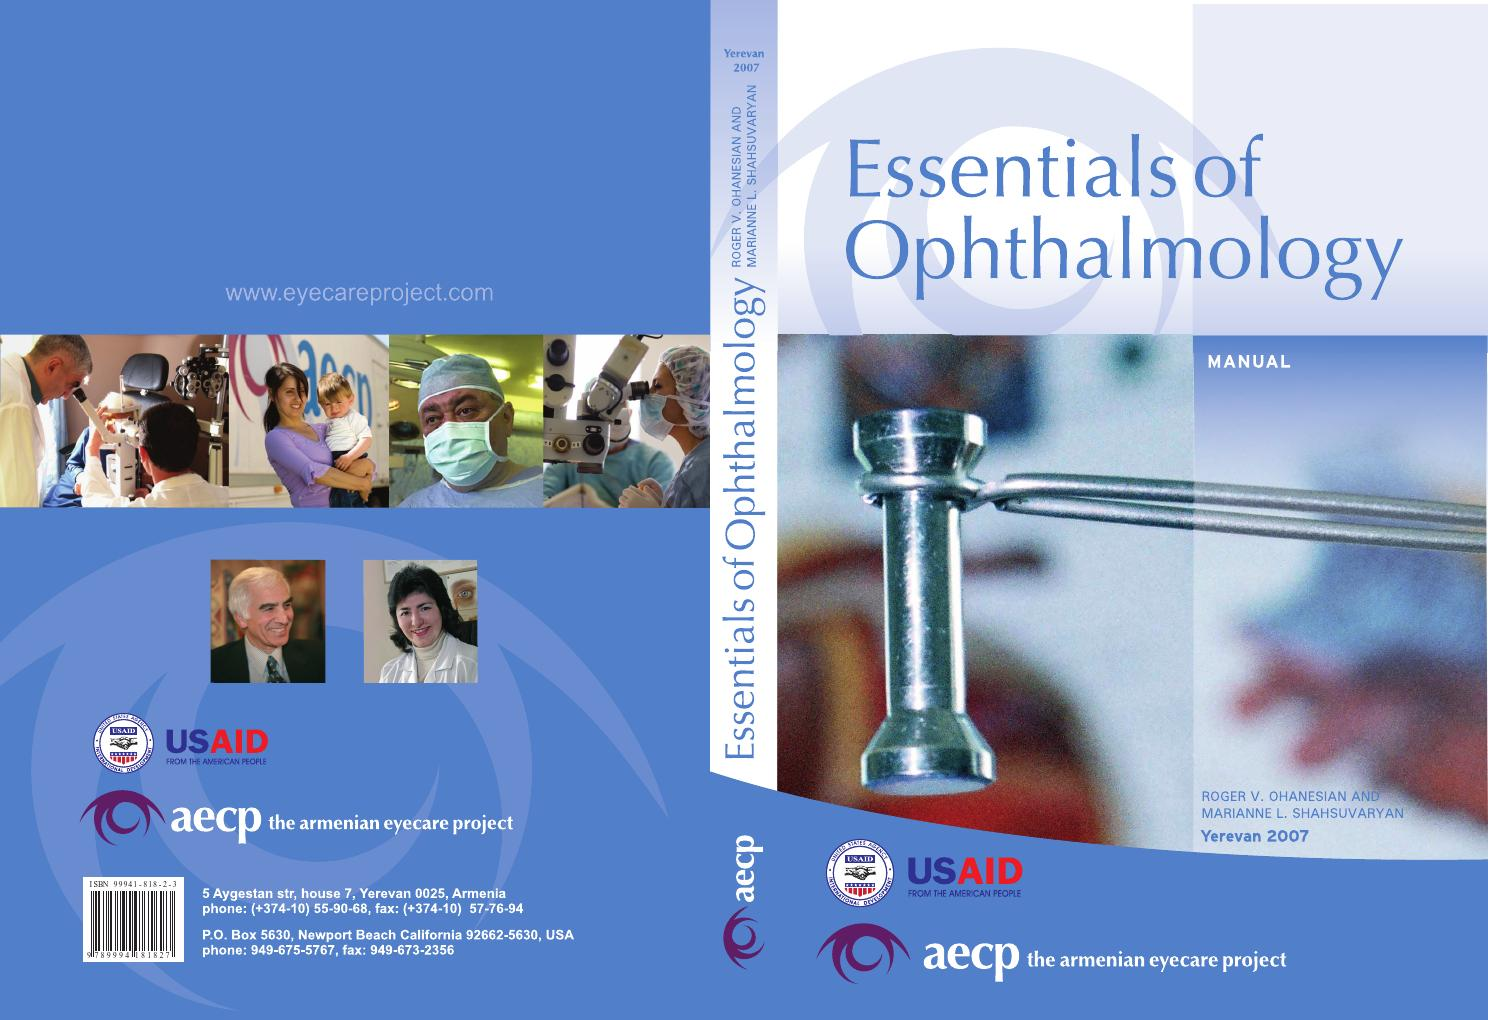 Bombe 94 dedans essentials of ophthalmologythe armenian eyecare project - issuu